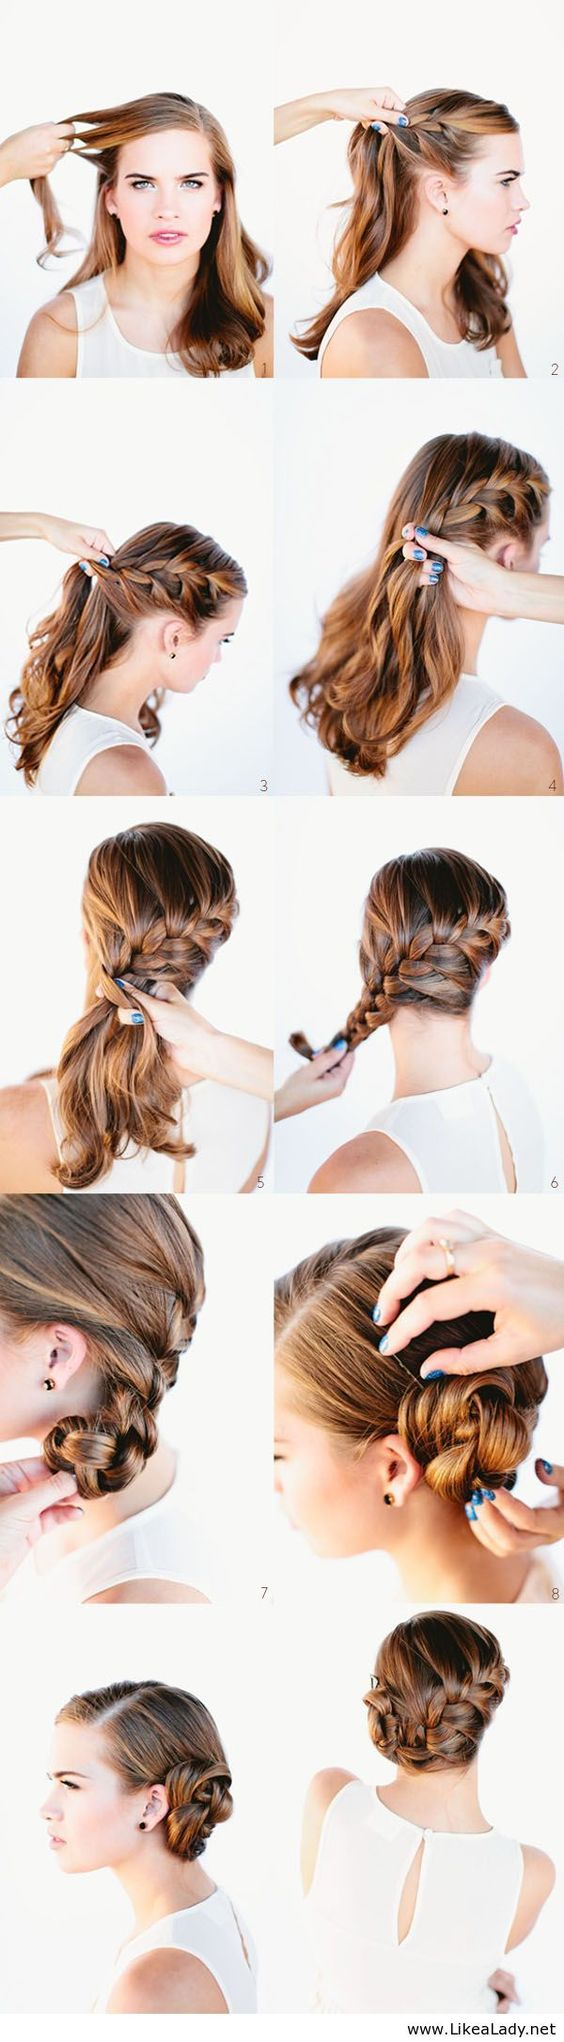 Coiffures Chignons And Tops On Pinterest